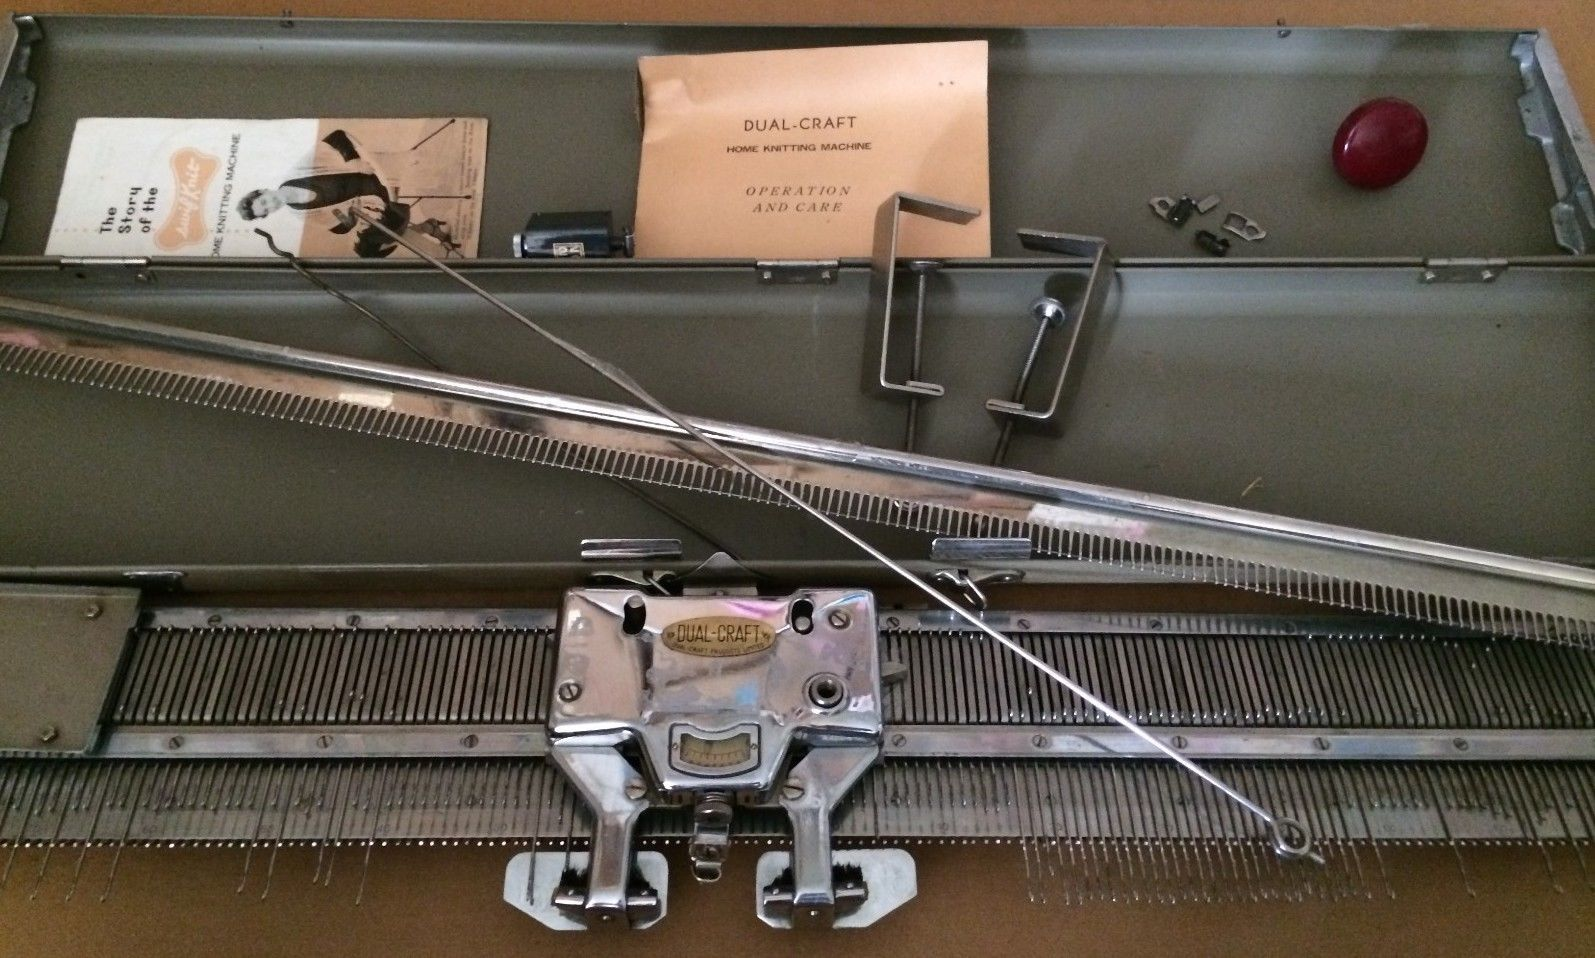 Knitting Machine For Home : Details about vintage antique dual craft home knitting